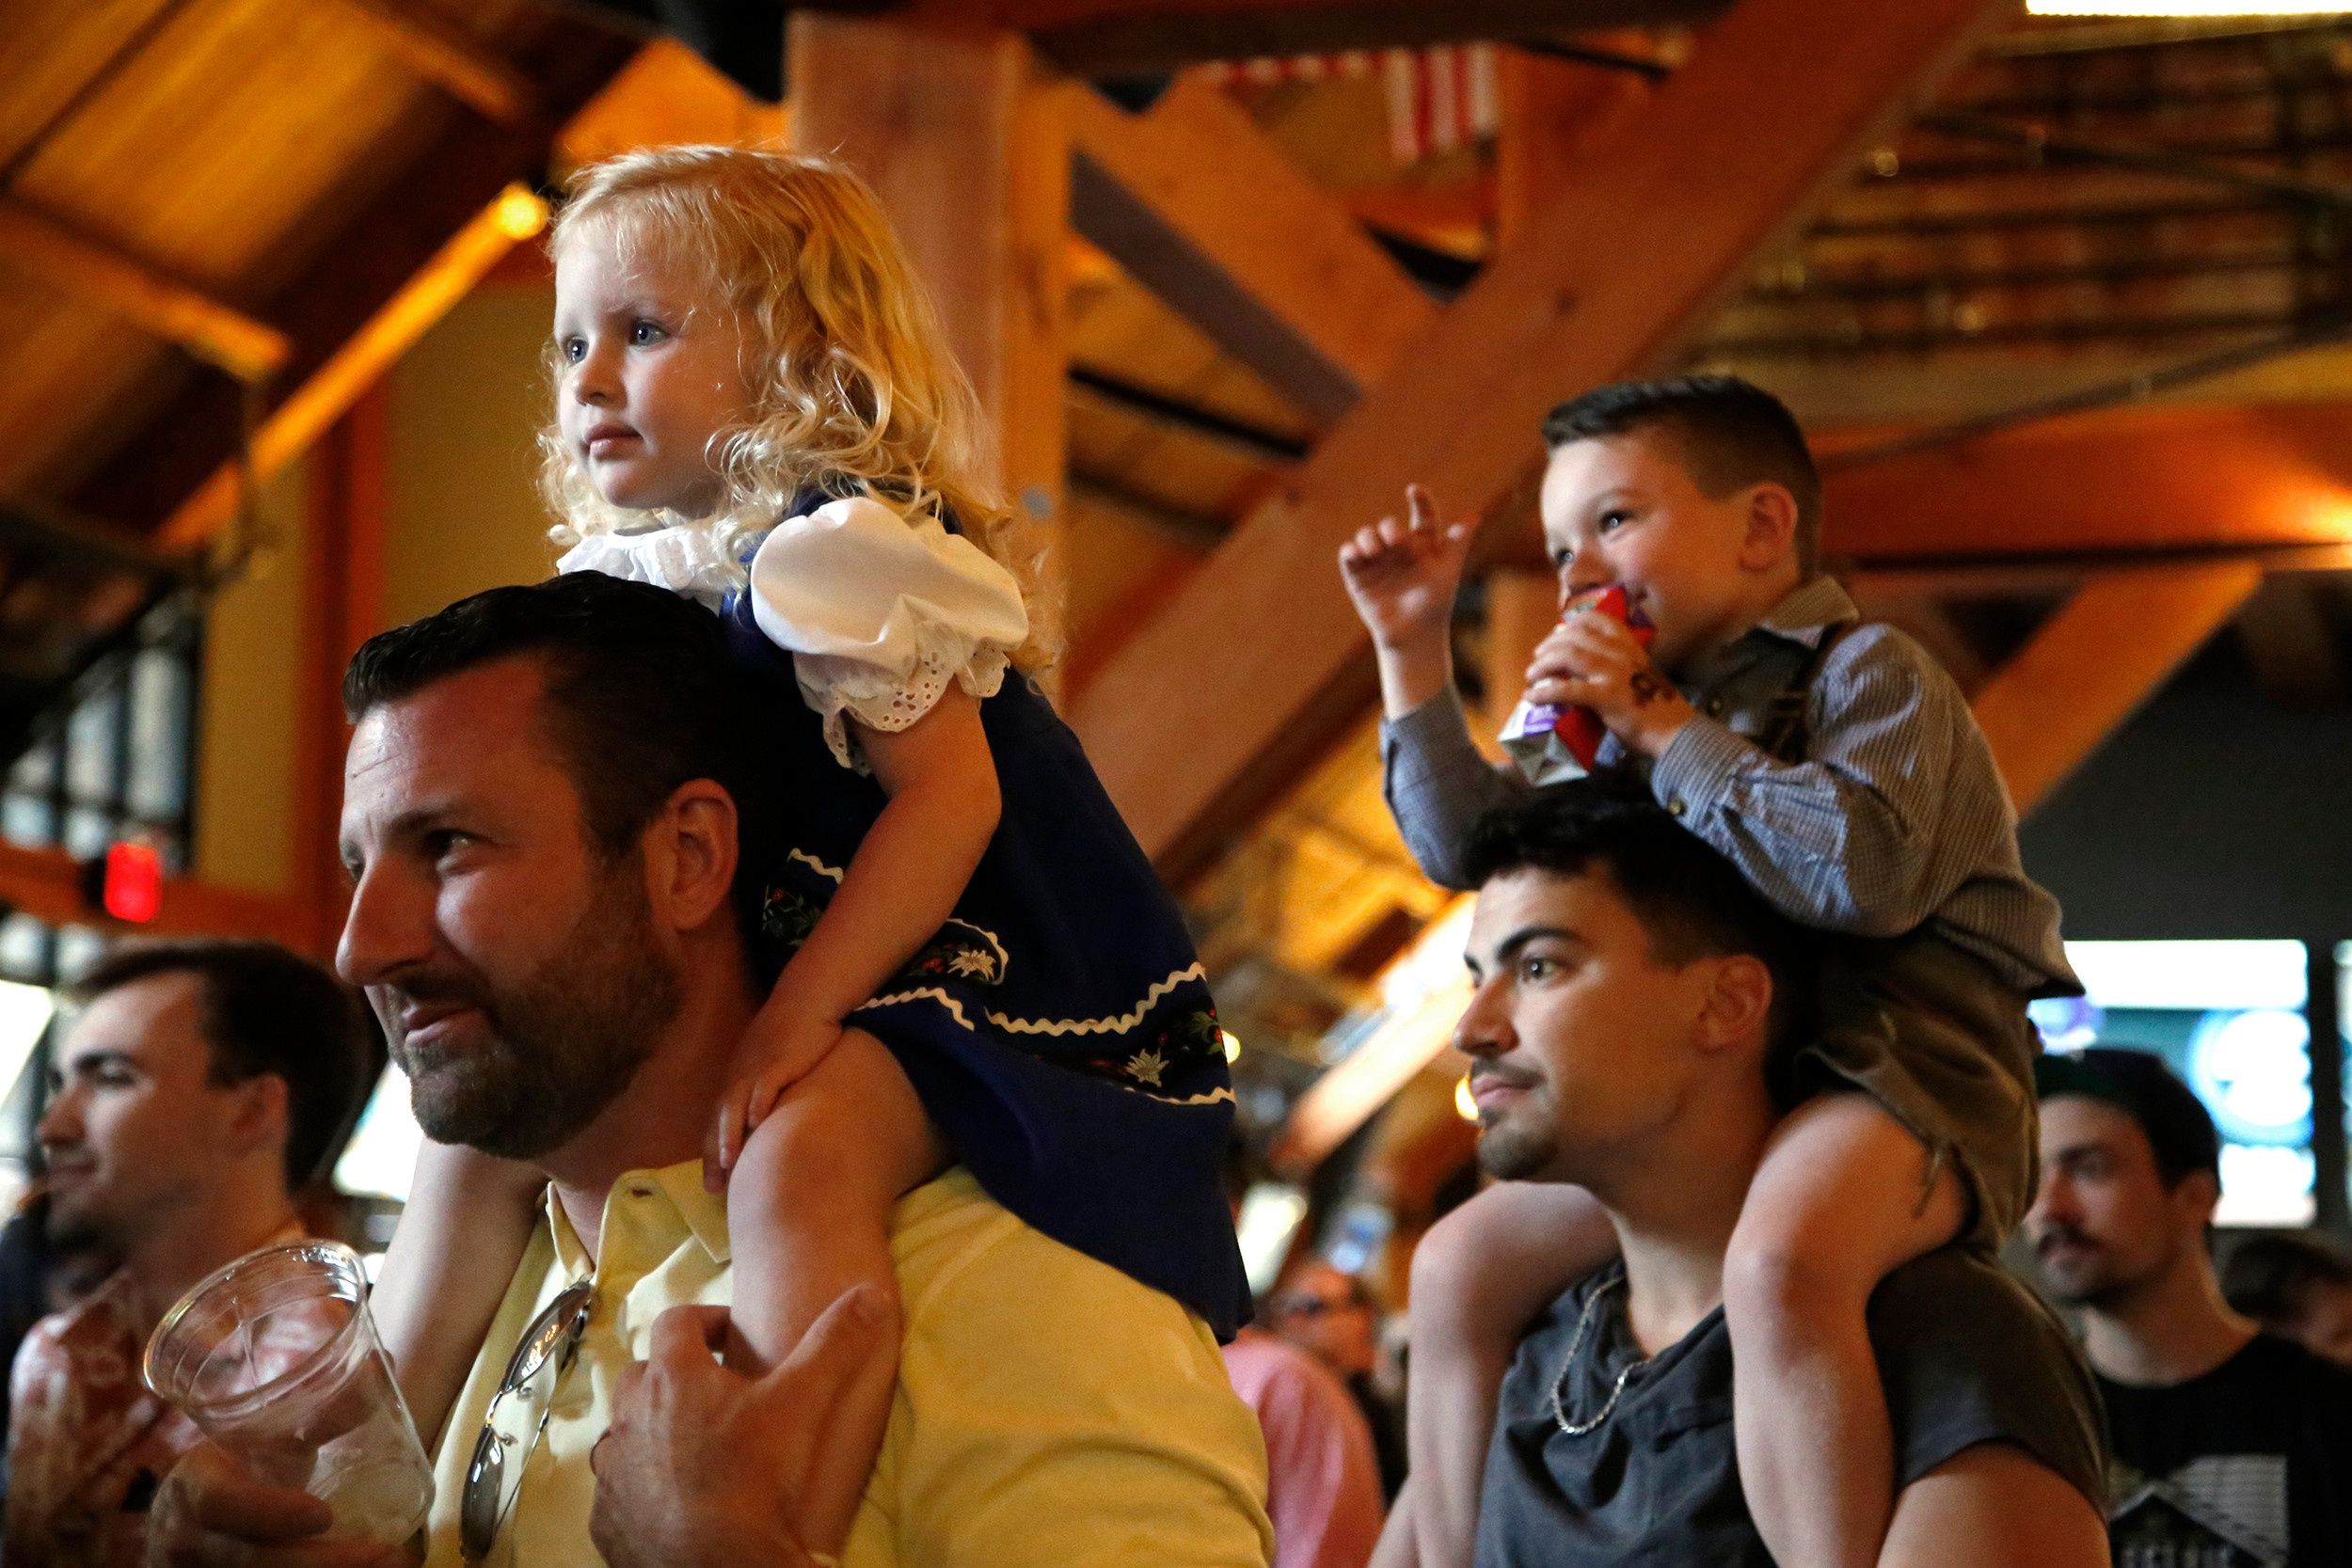 Cameron Wilkins (2) and Ashton Wilkins (4) have a bird's eye view of their mom while sittle on dad and cousin's shoulders, Christopher Wilkins and Steven Liguori.